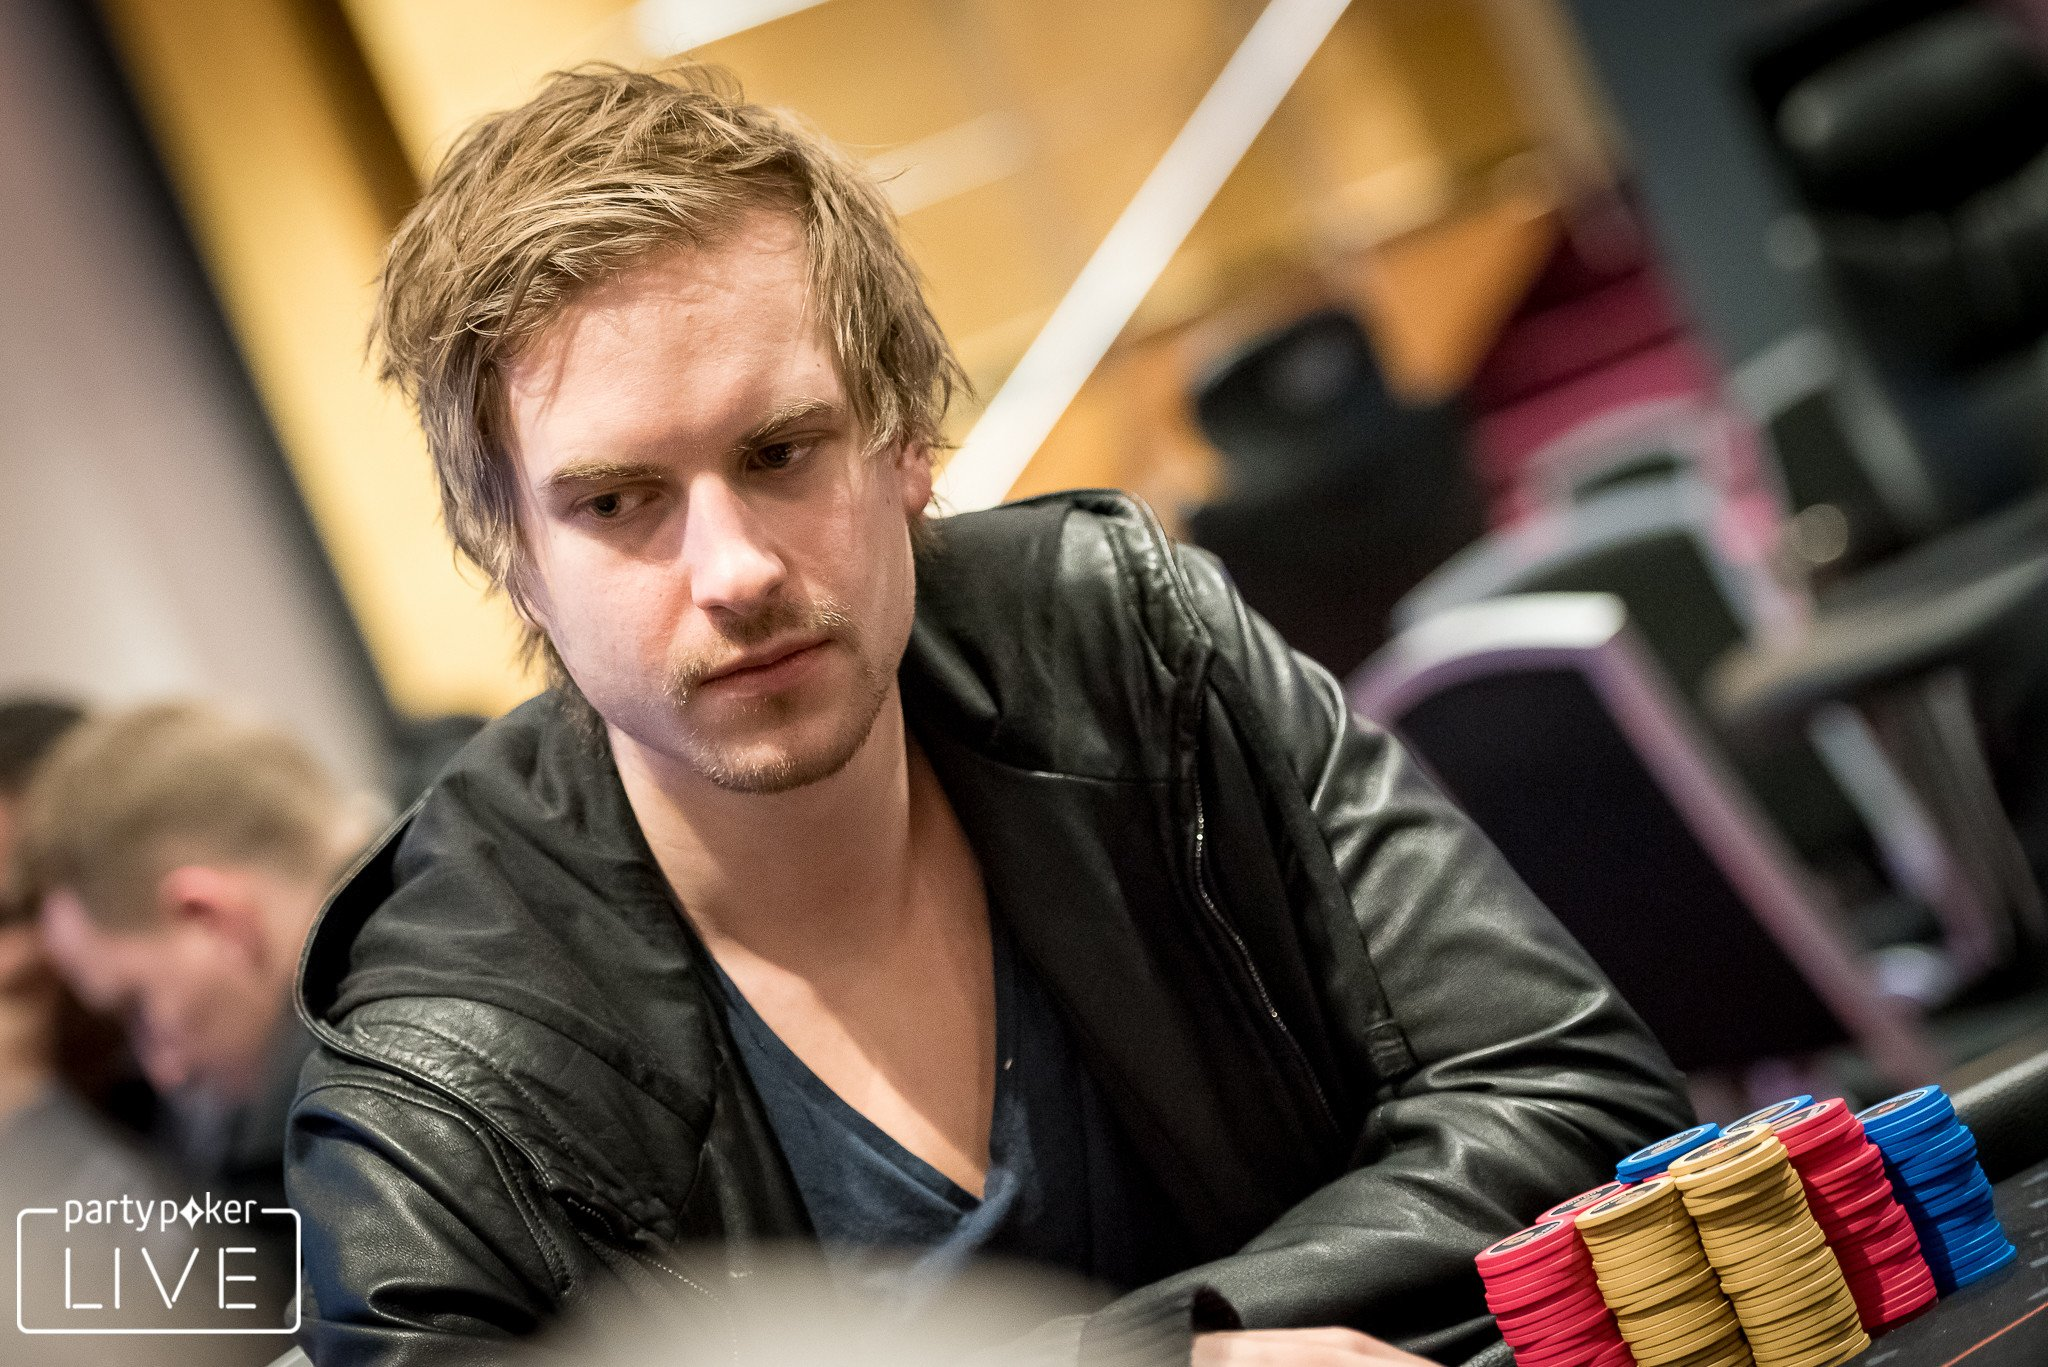 Up and Down: Isildur1 banking scores on partypoker as Chinese Player wins Sunday Million